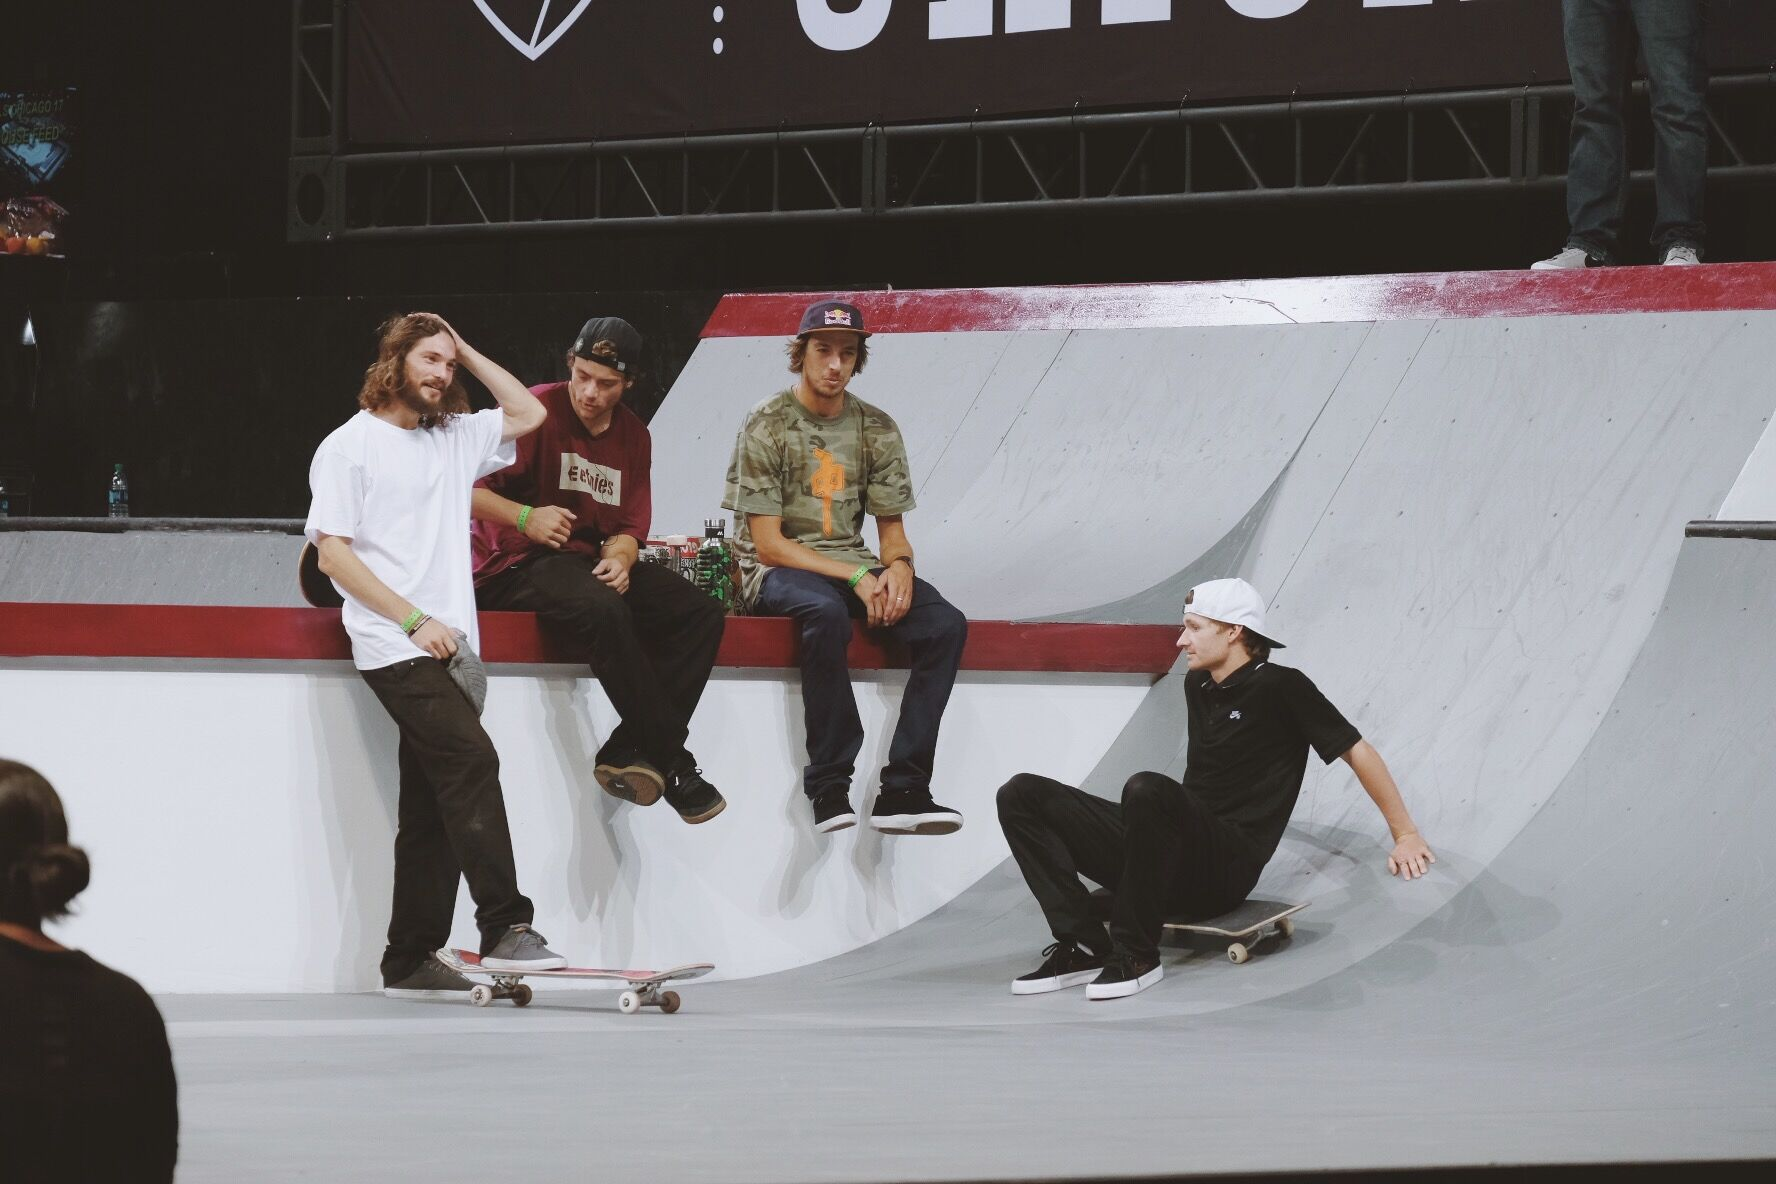 Skaters at SLS Chicago